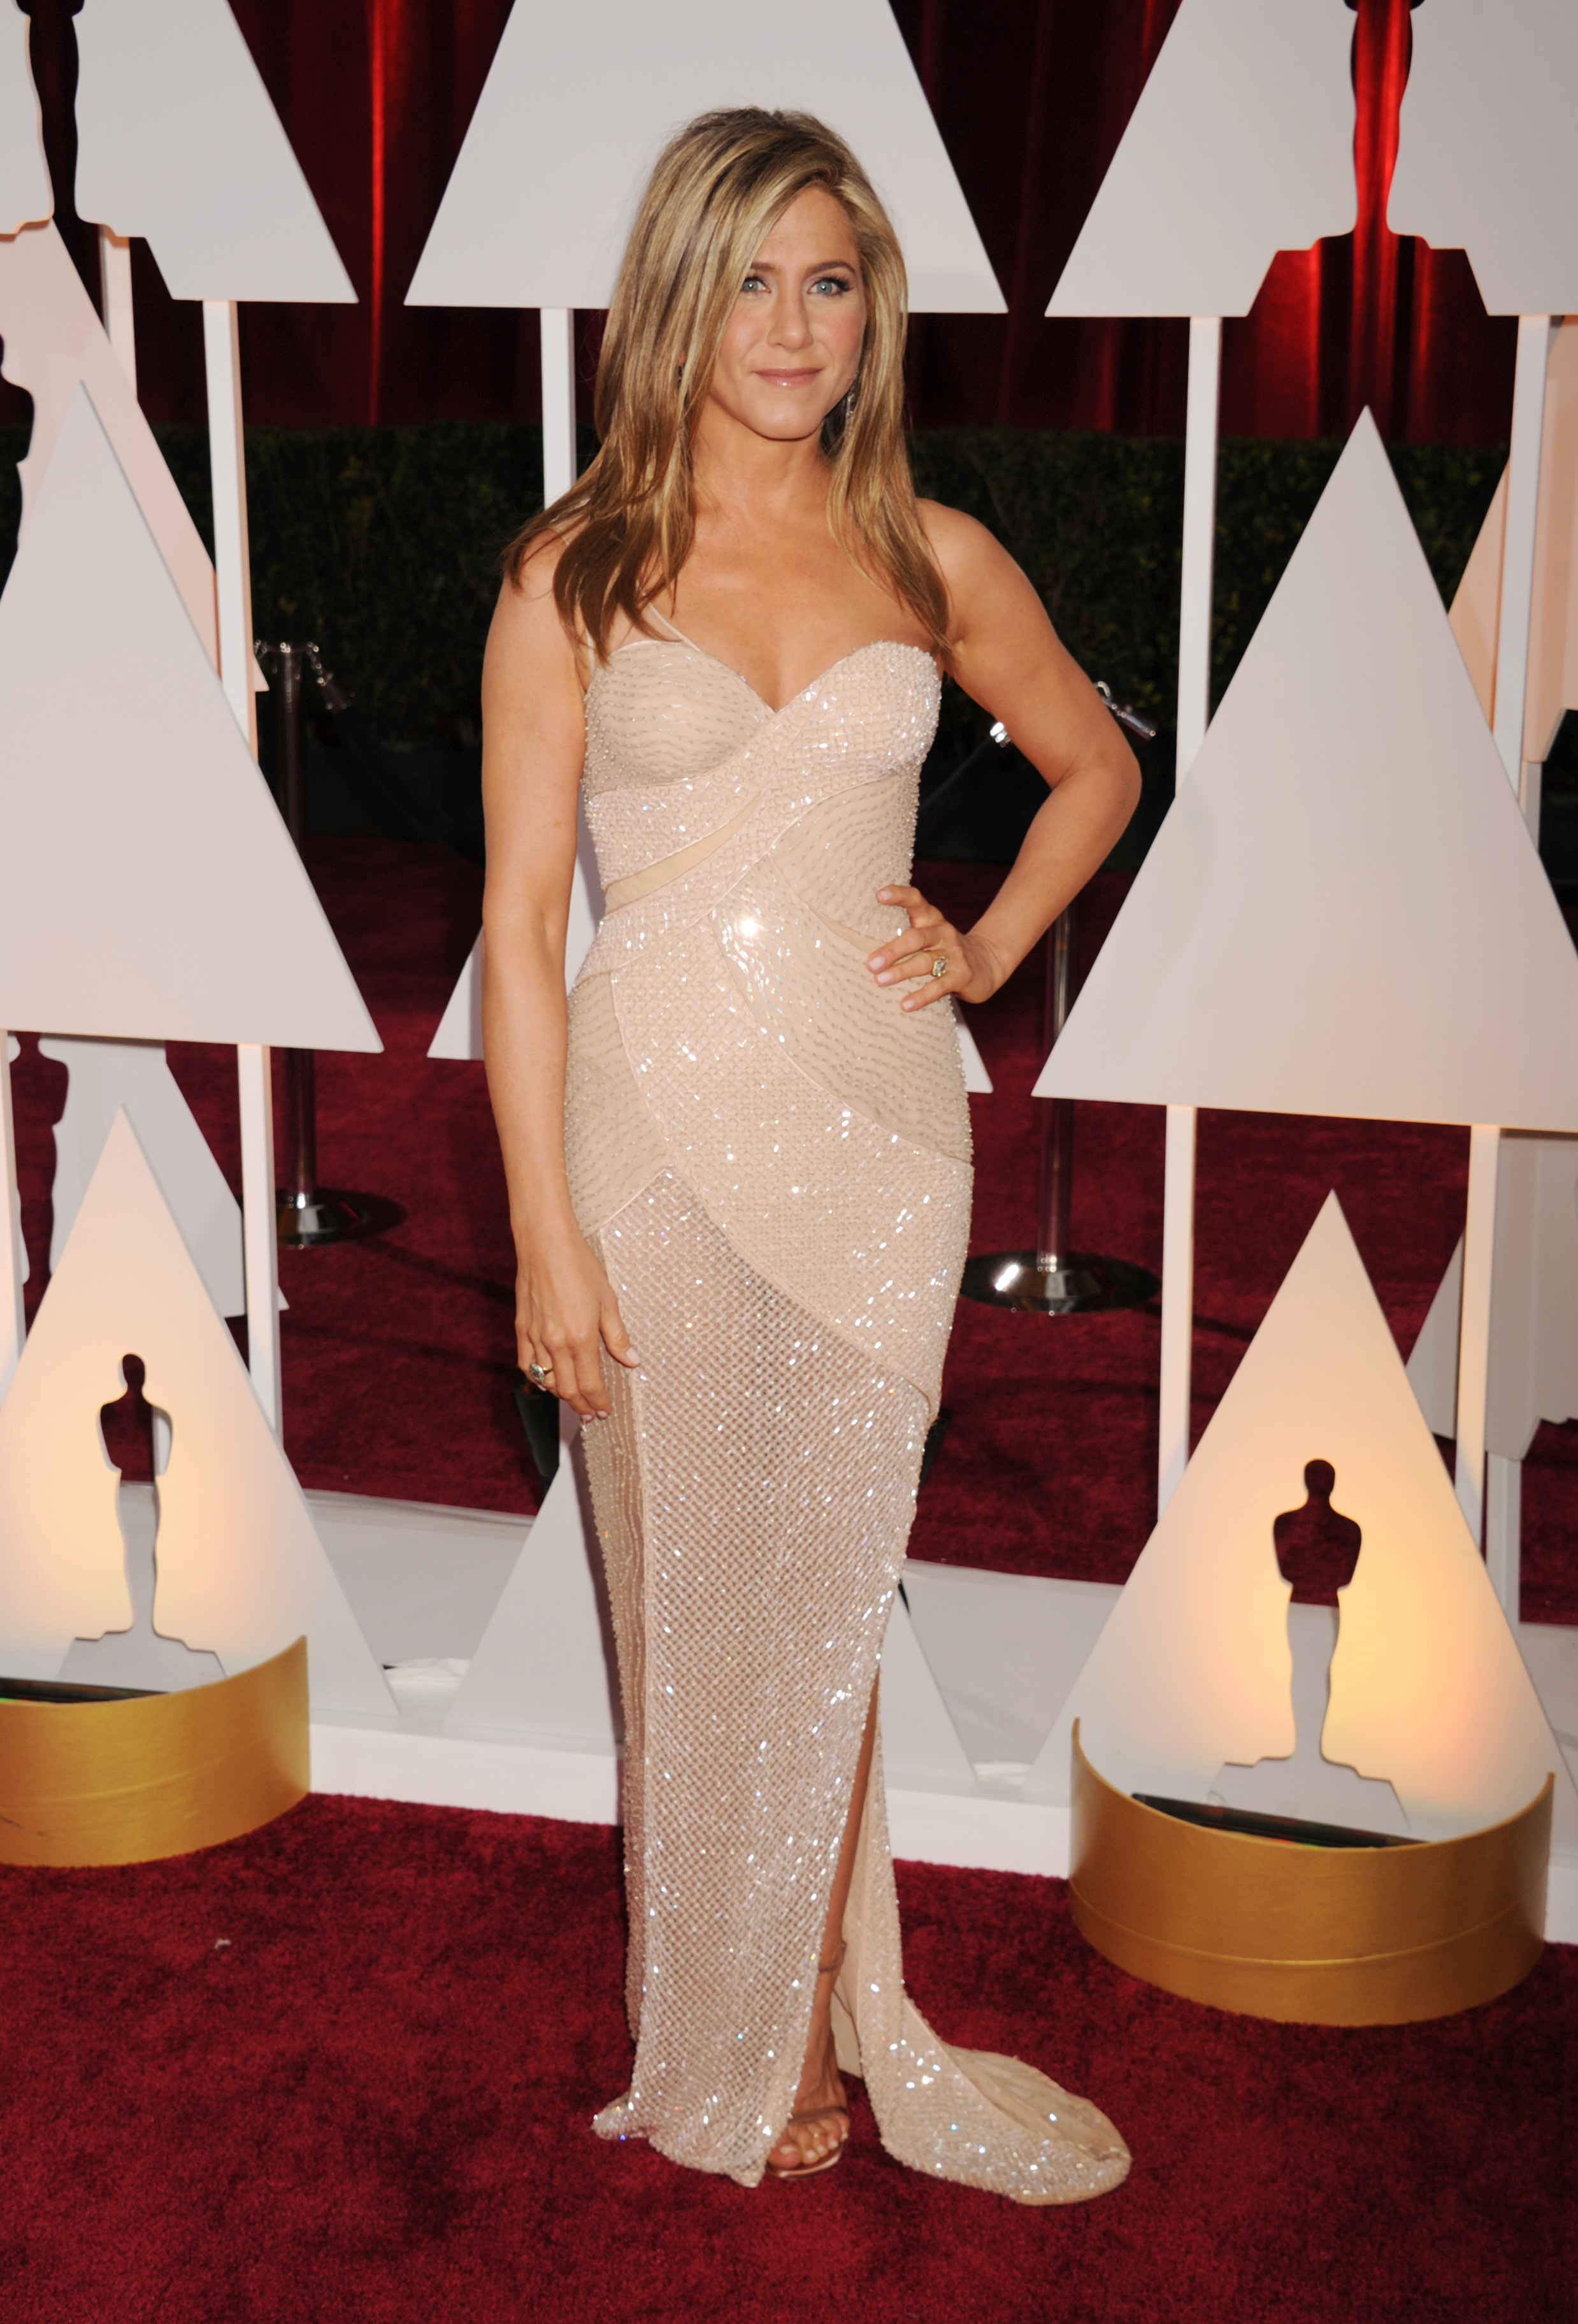 Jennifer Aniston arrives at the 87th Annual Academy Awards at Hollywood & Highland Center in Hollywood on Feb 22, 2015.